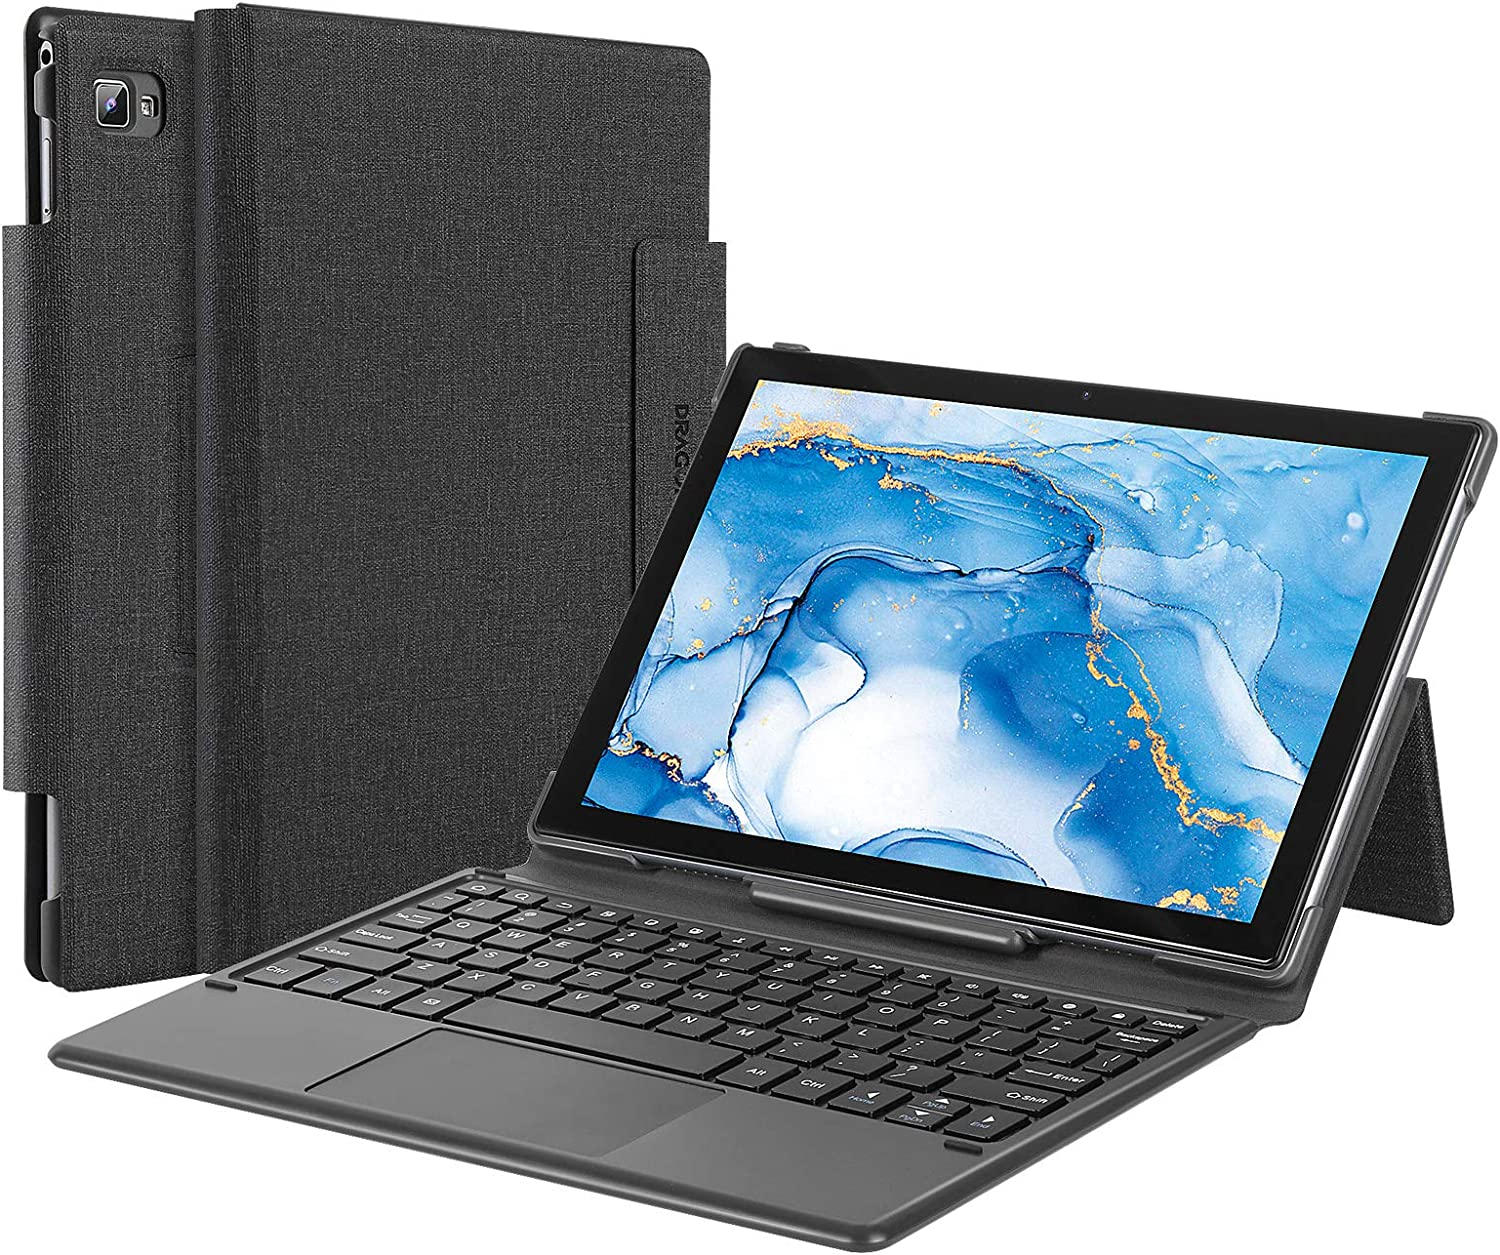 Dragon Touch Docking Keyboard Case for Notepad 102 and Notepad T10M 10-Inch Tablet, 80 Keys, 5 Pin Connection Keyboard Tablet Case, Foldable, not Include Tablet